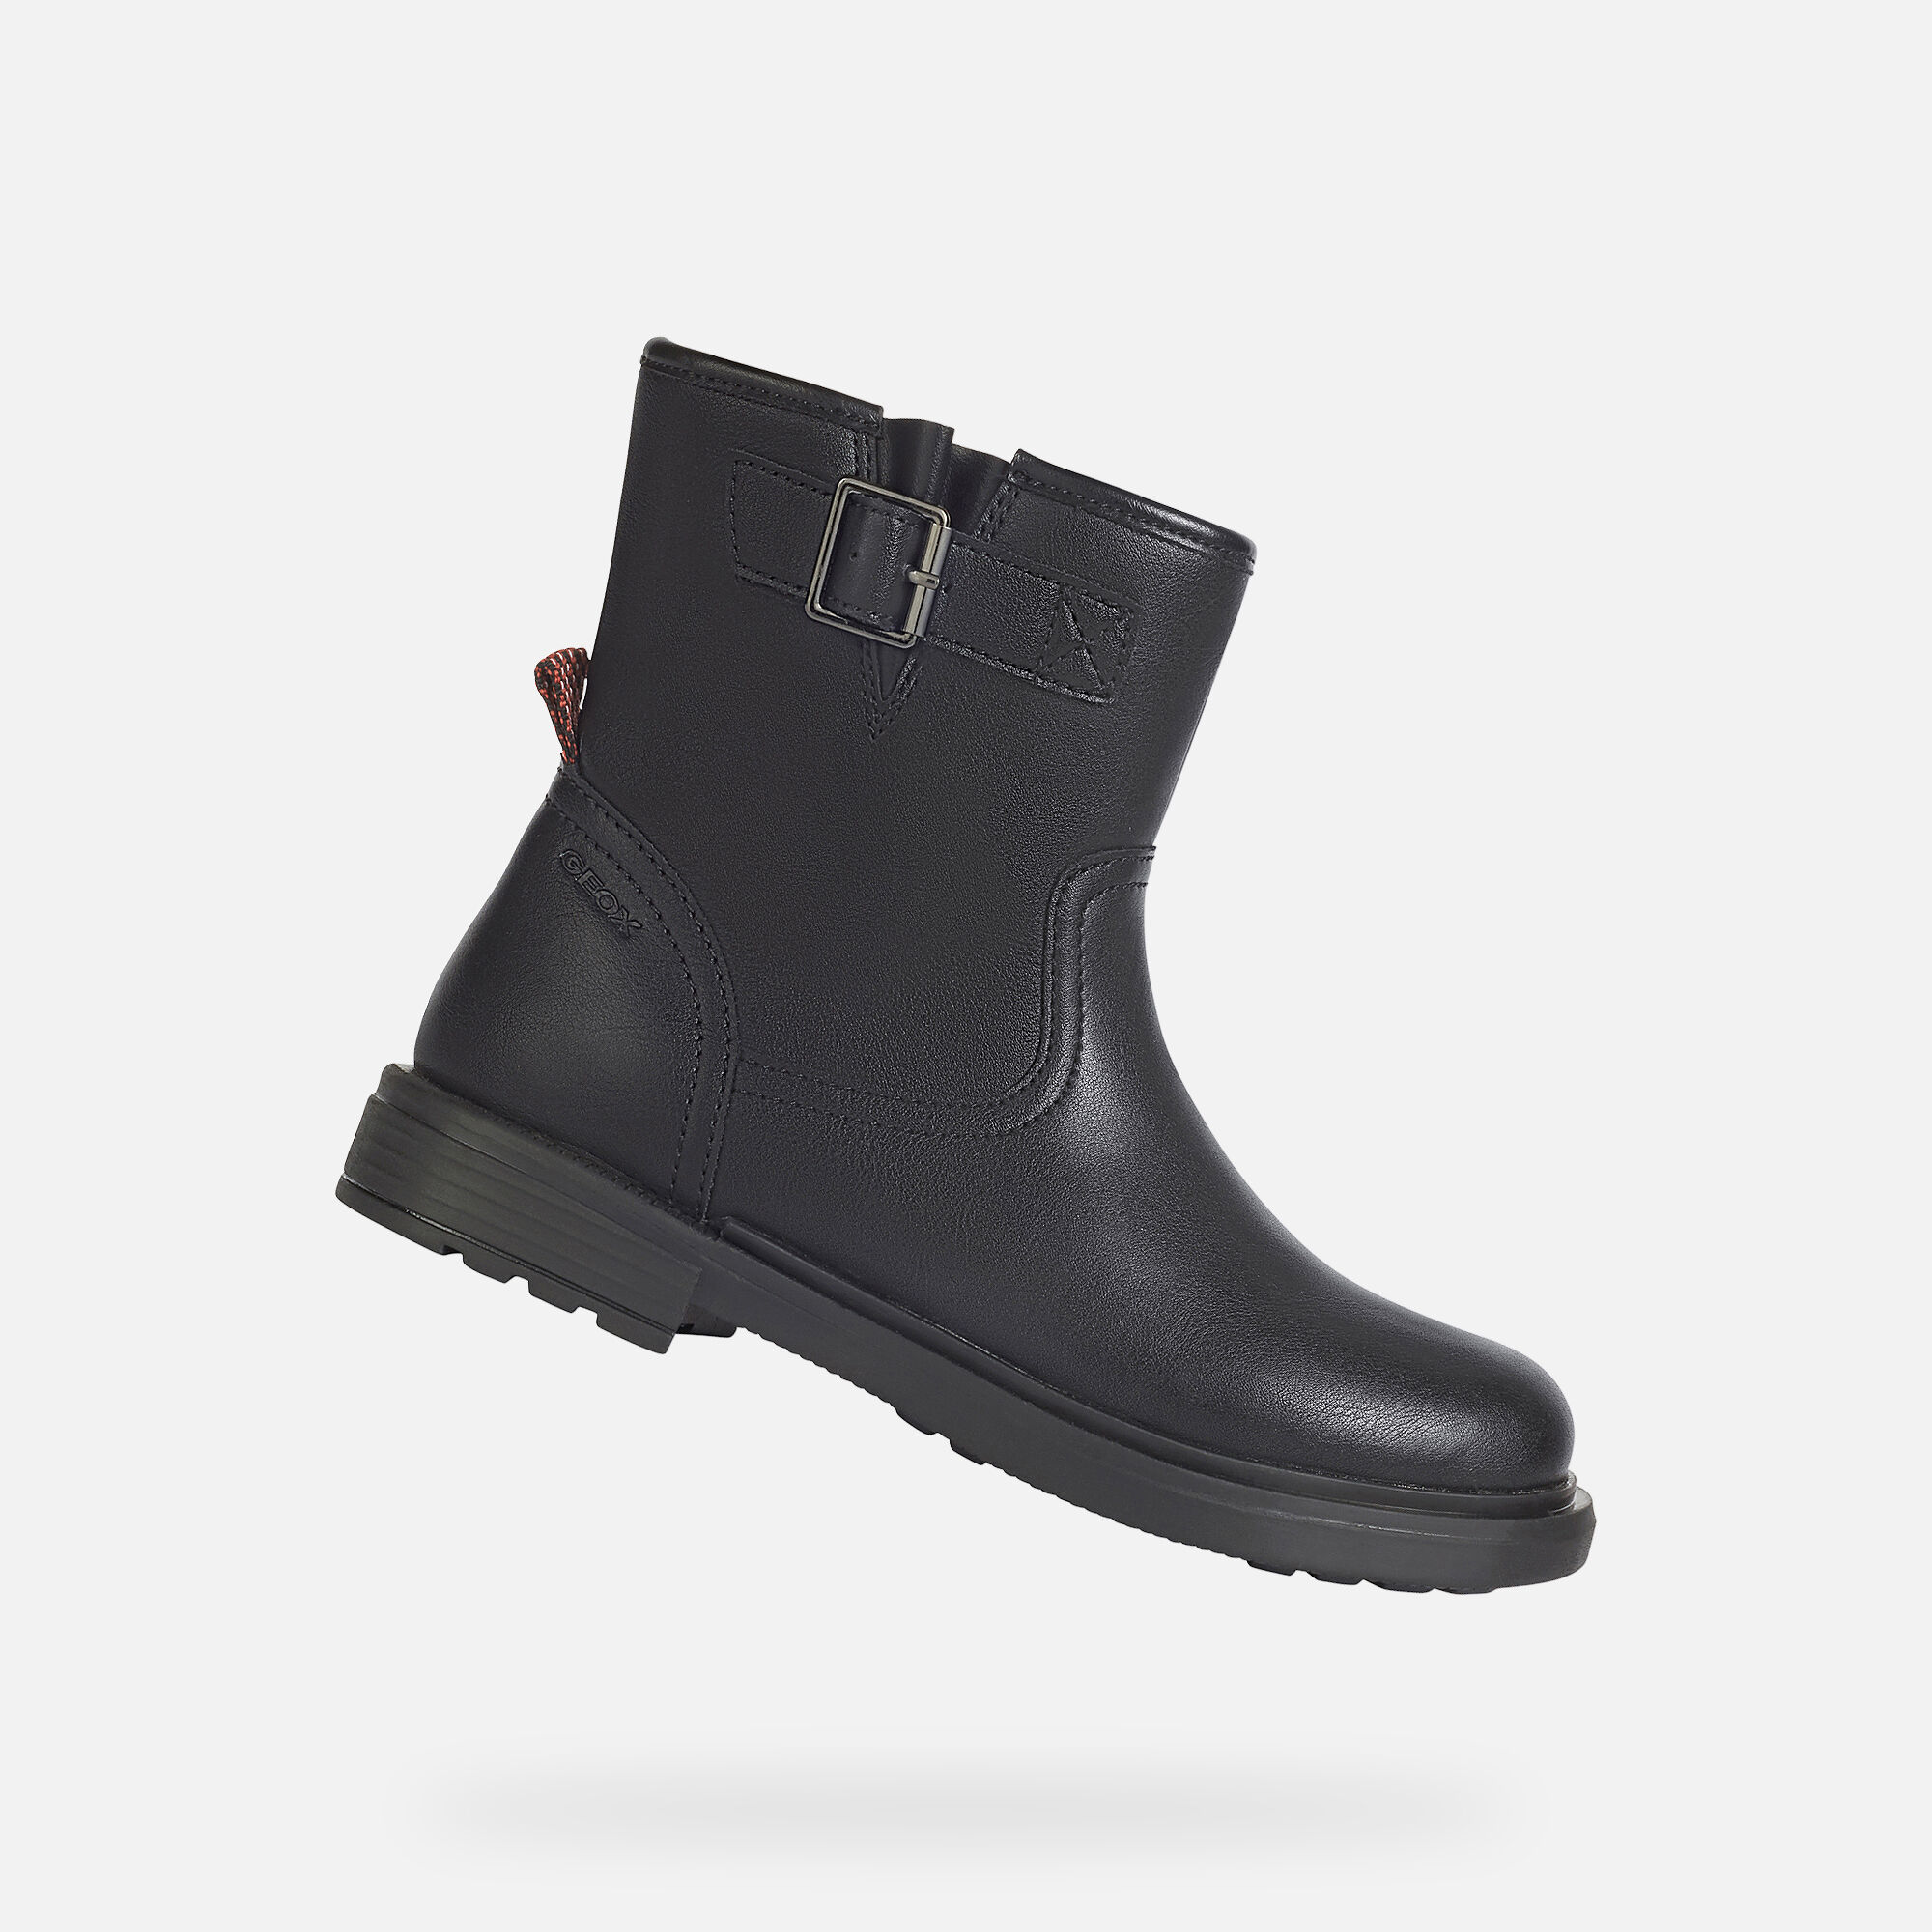 Boots, Comfortable and Breathable Geox